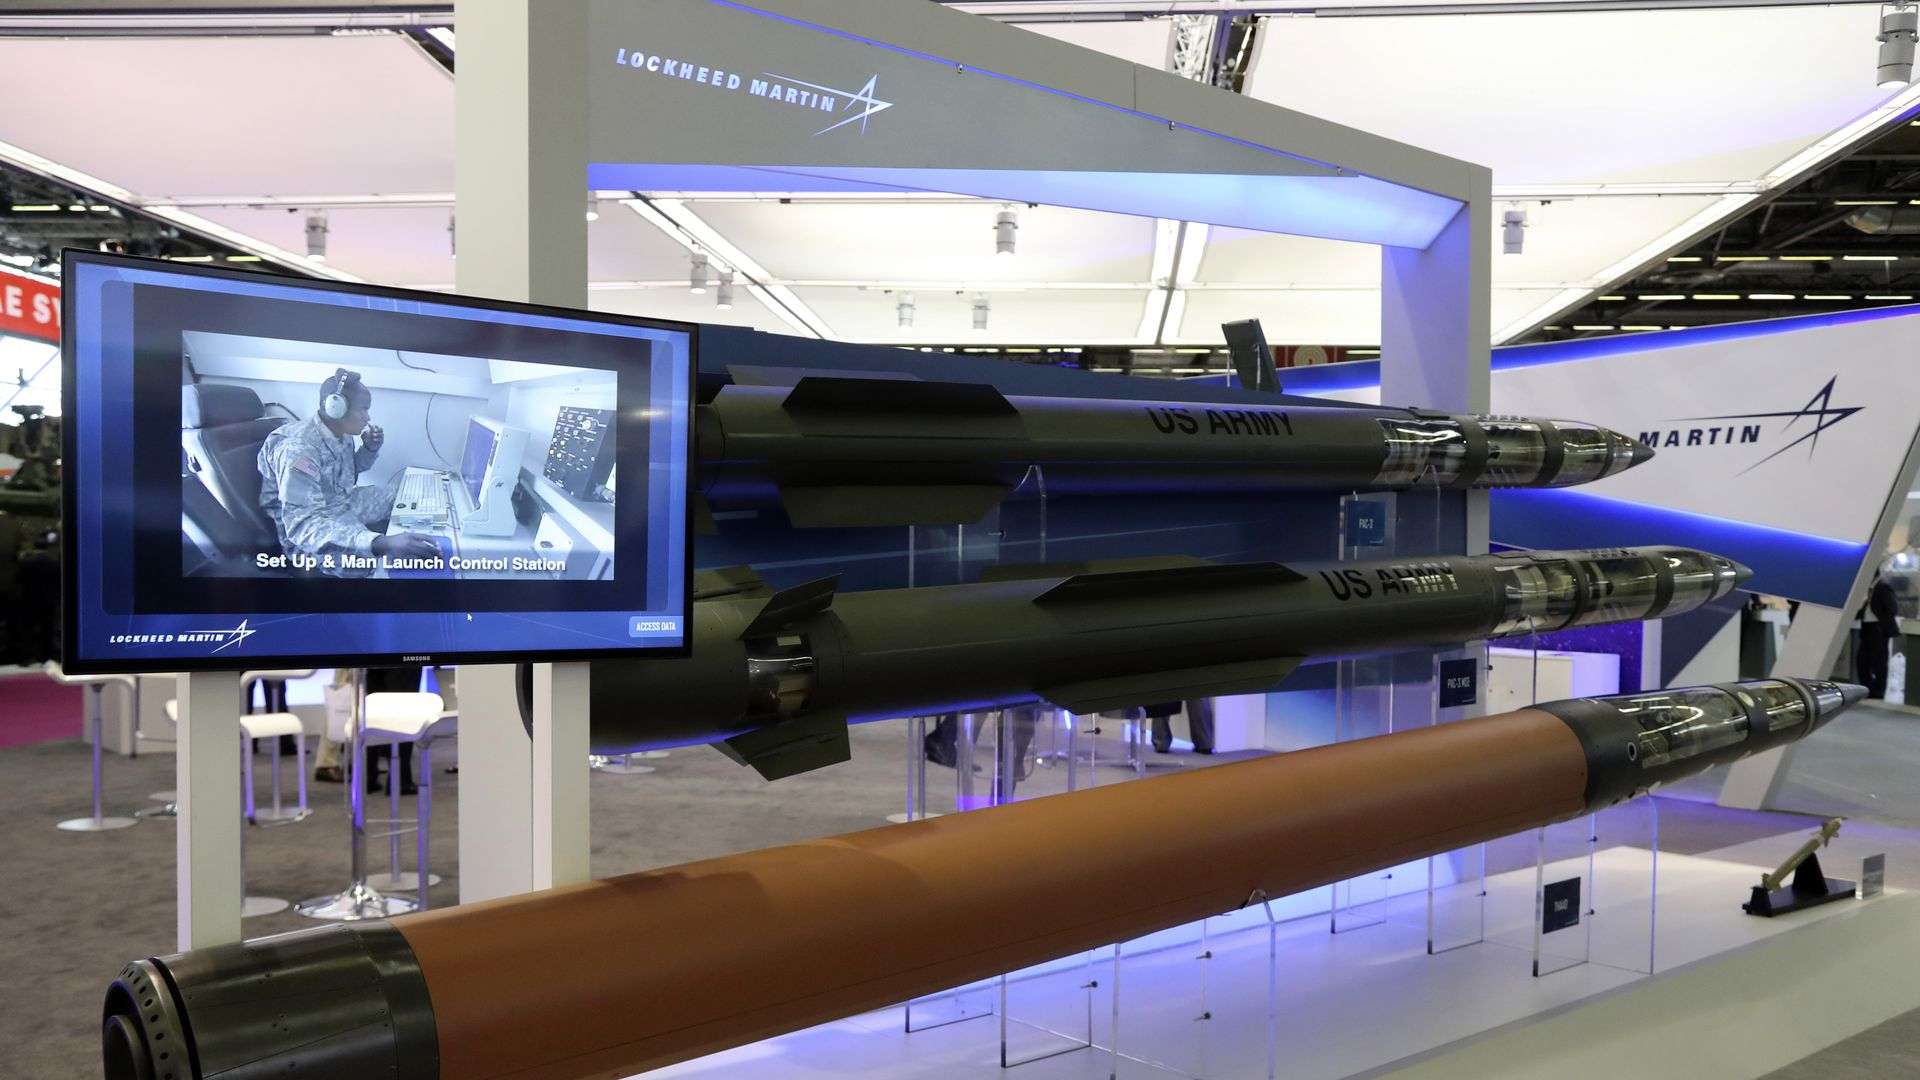 Lockheed Martin missiles on display at a defense trade show